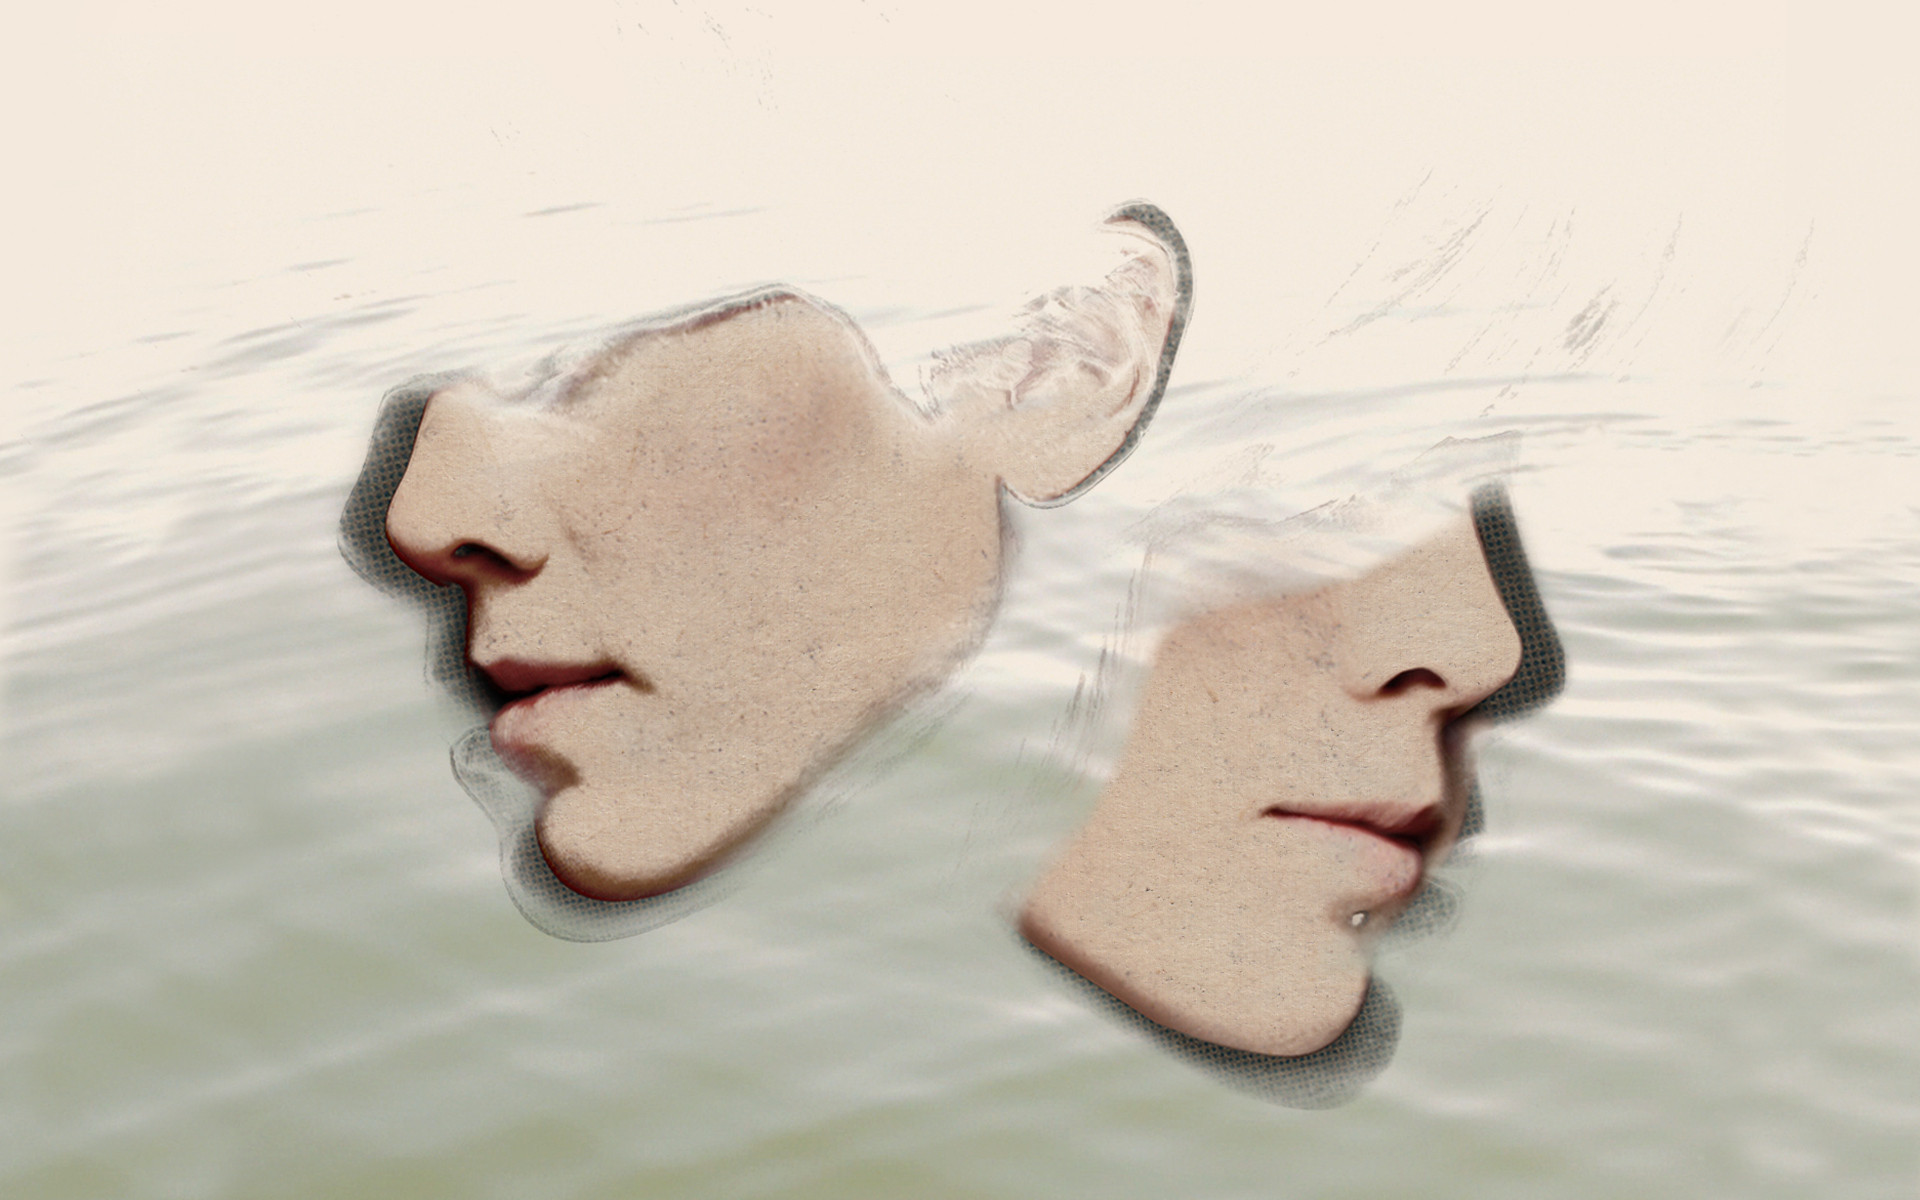 1920x1200 Tegan and Sara - Get Along  1920x1080